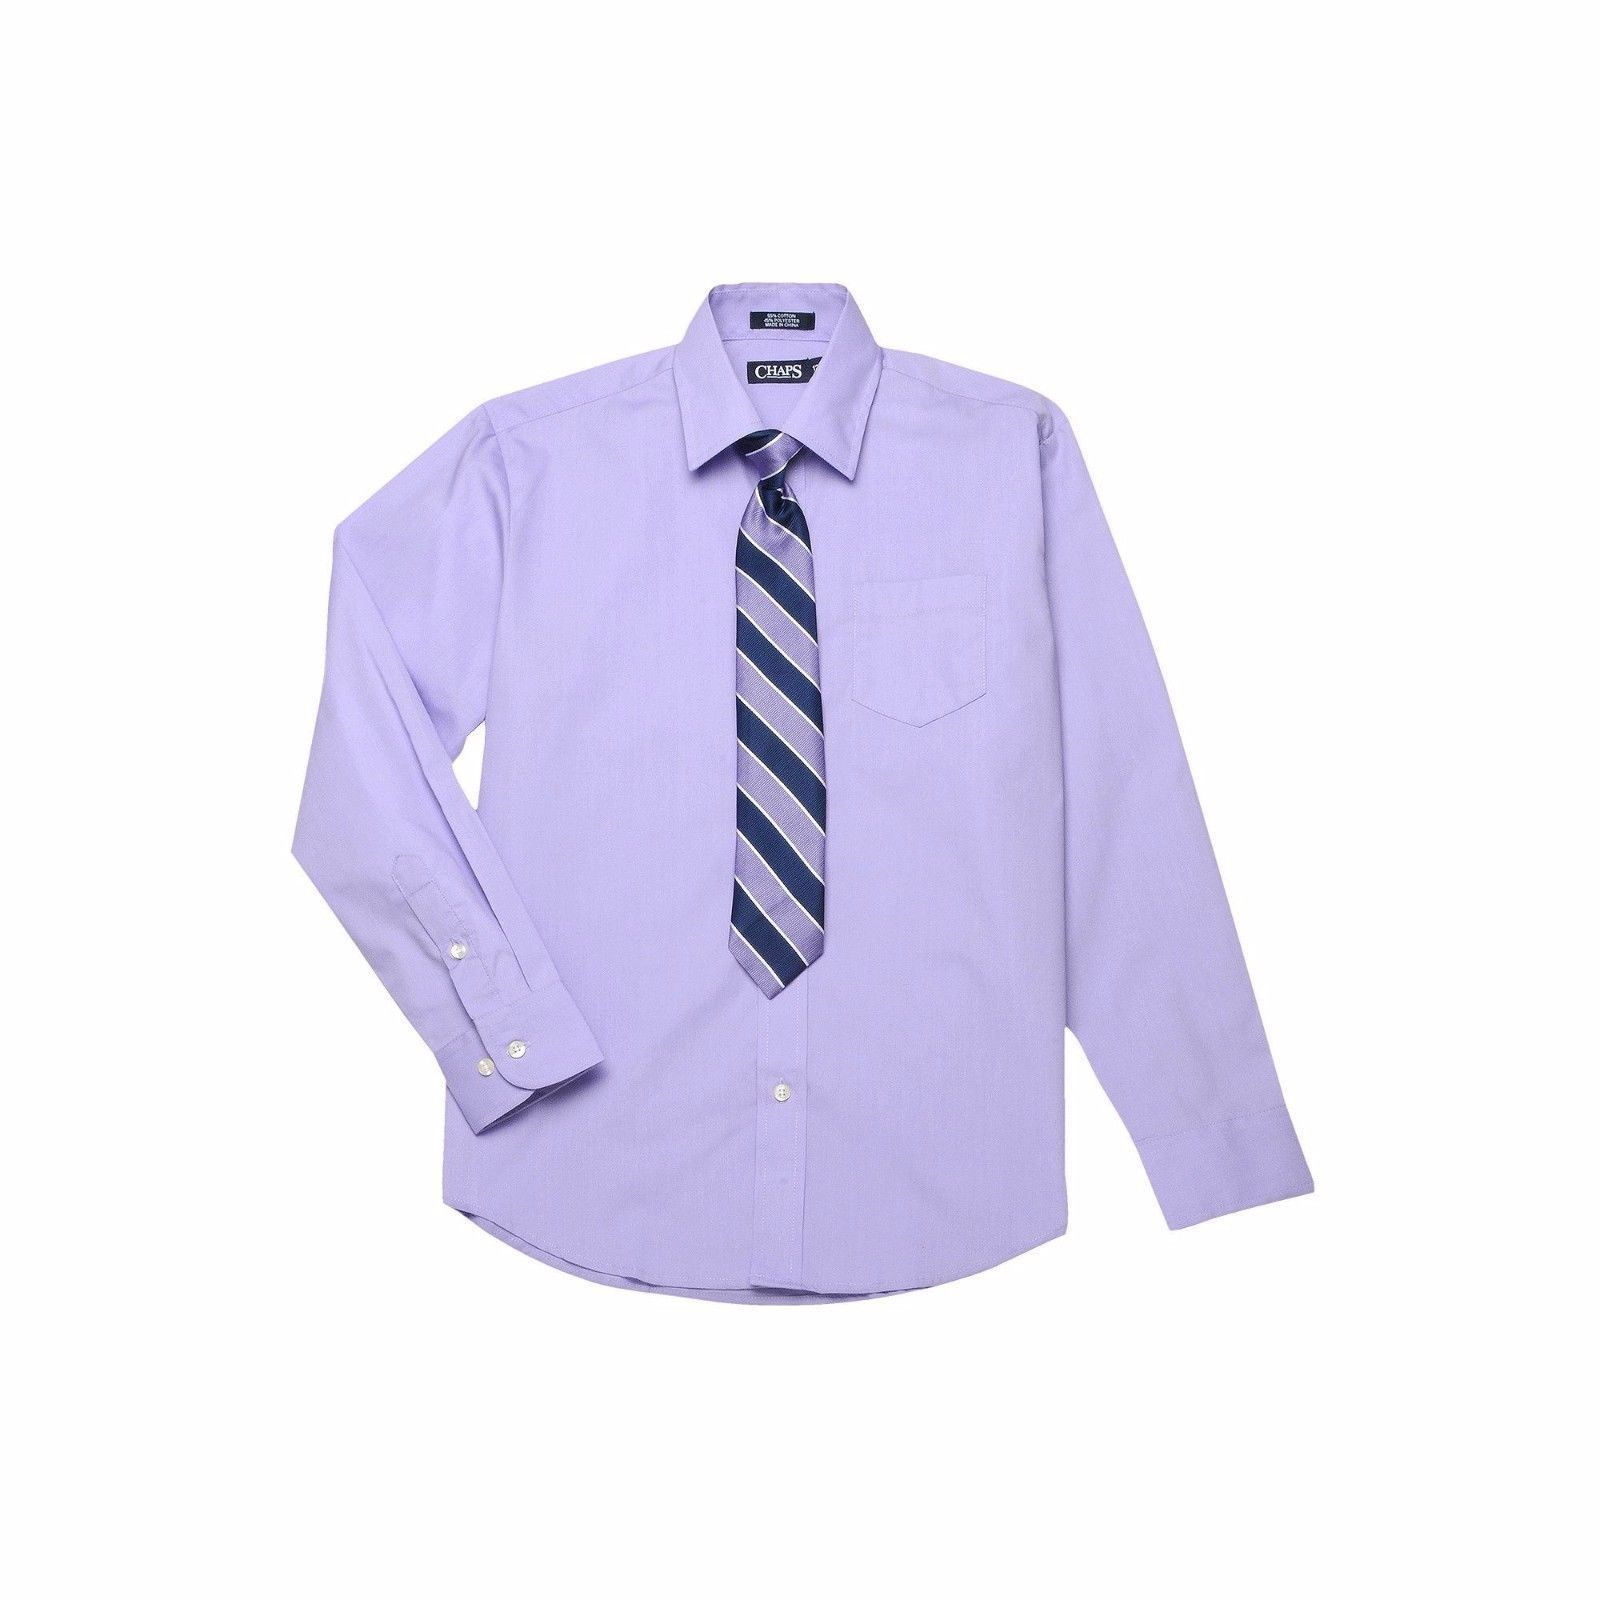 Nwt Chaps Boys Size 5 Dress Shirt Tie Set And 24 Similar Items